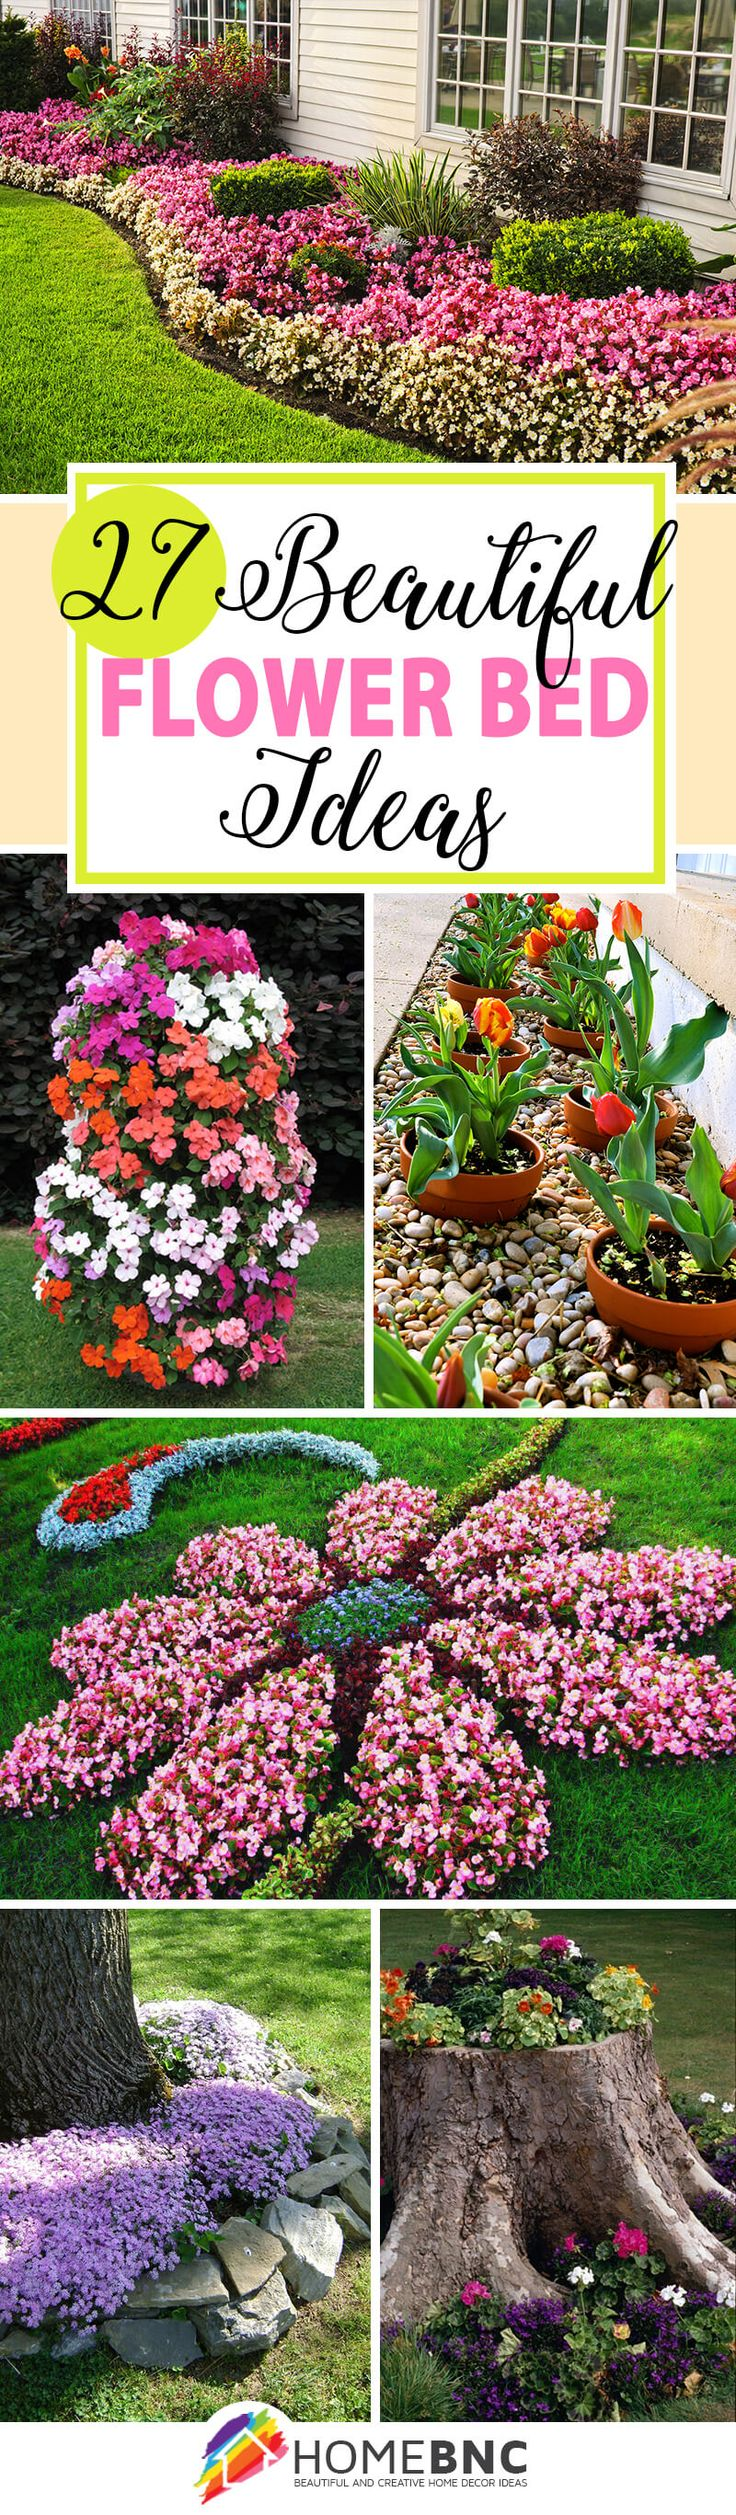 Flower Garden Designs flower garden design 27 Gorgeous And Creative Flower Bed Ideas To Try